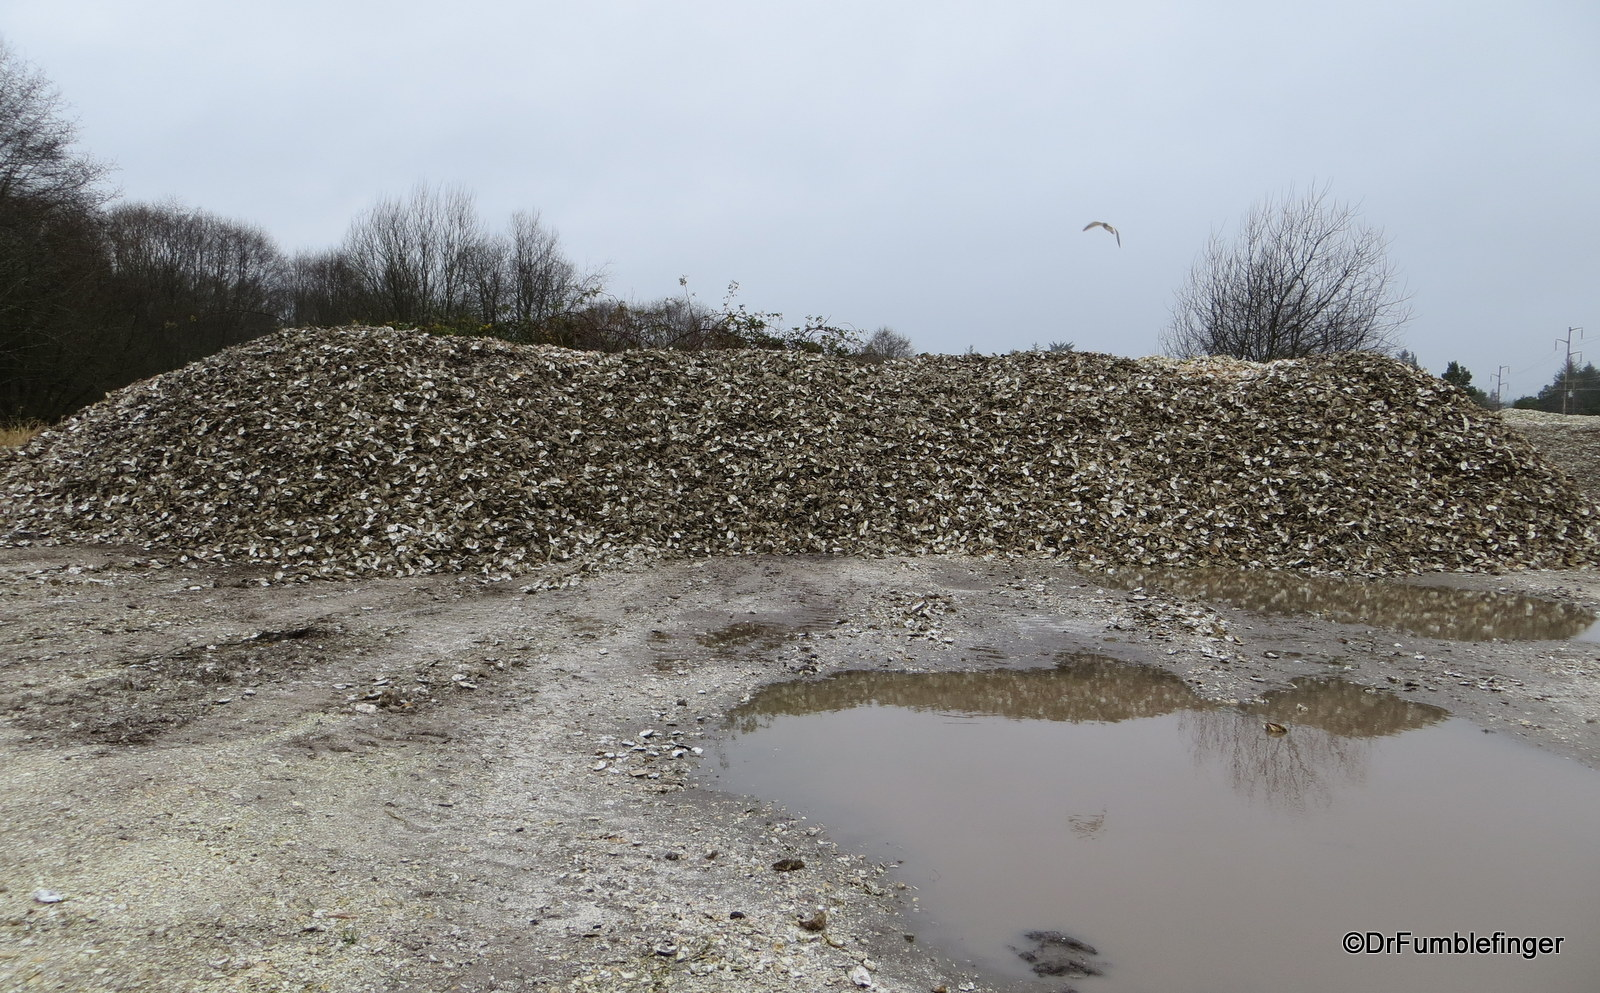 Pile of oyster shells, Oysterville